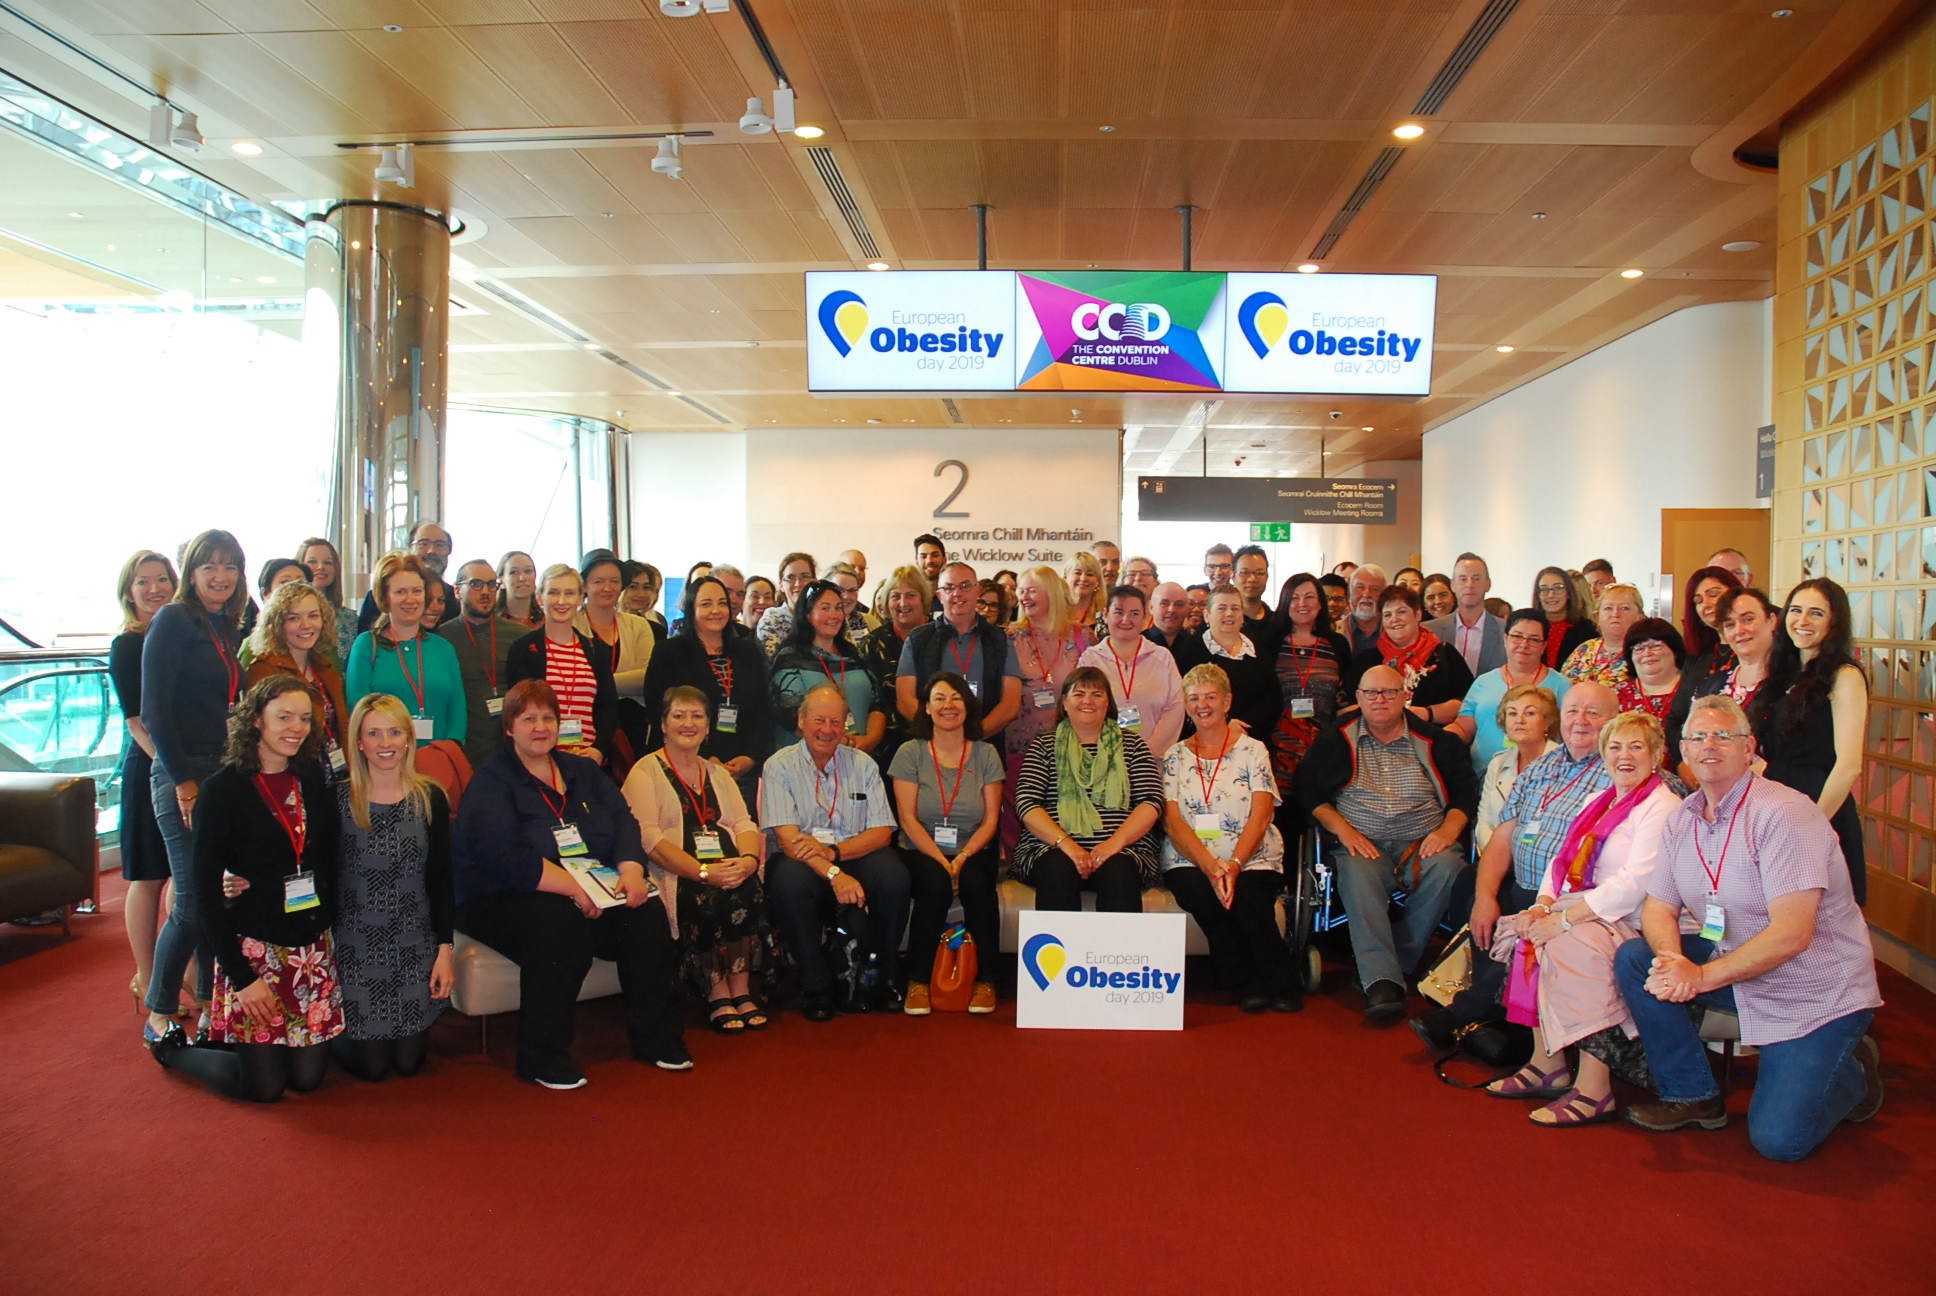 Patient Reflections from European Obesity Day & ASOI 2019